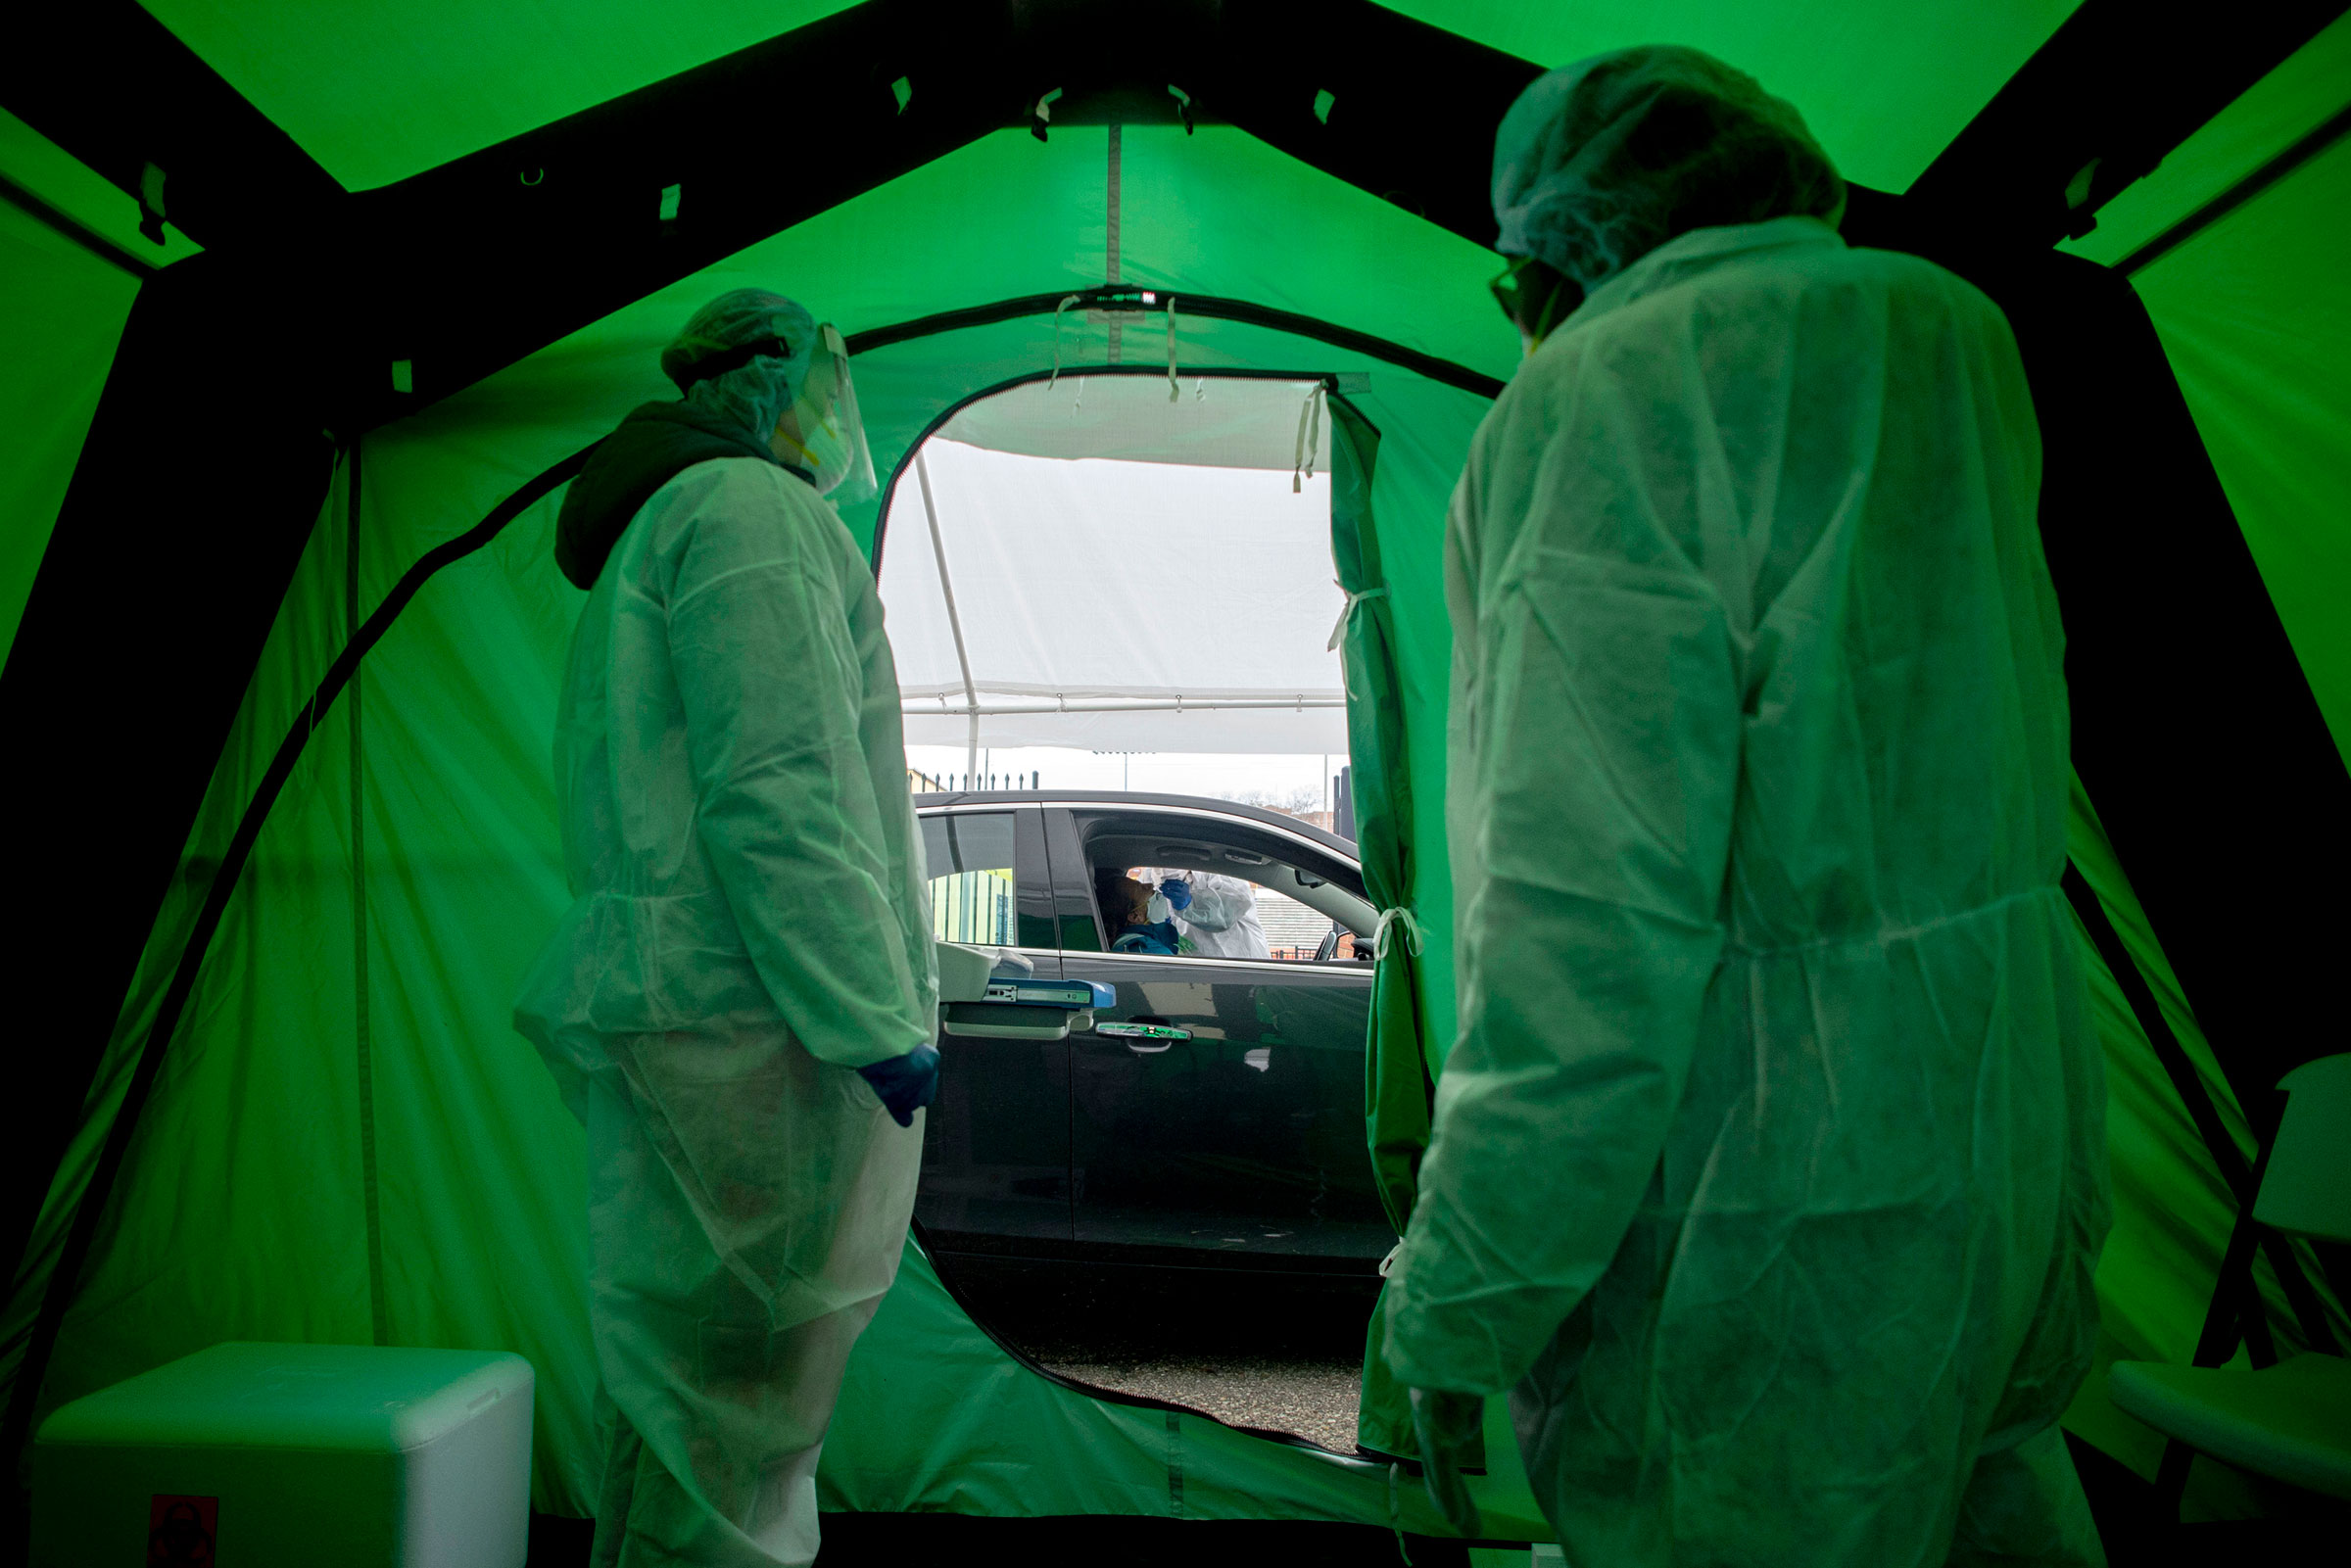 Medical workers watch as one of the first 50 people are tested for coronavirus at Flint, Michigan's first drive-thru testing site on April 15, 2020.